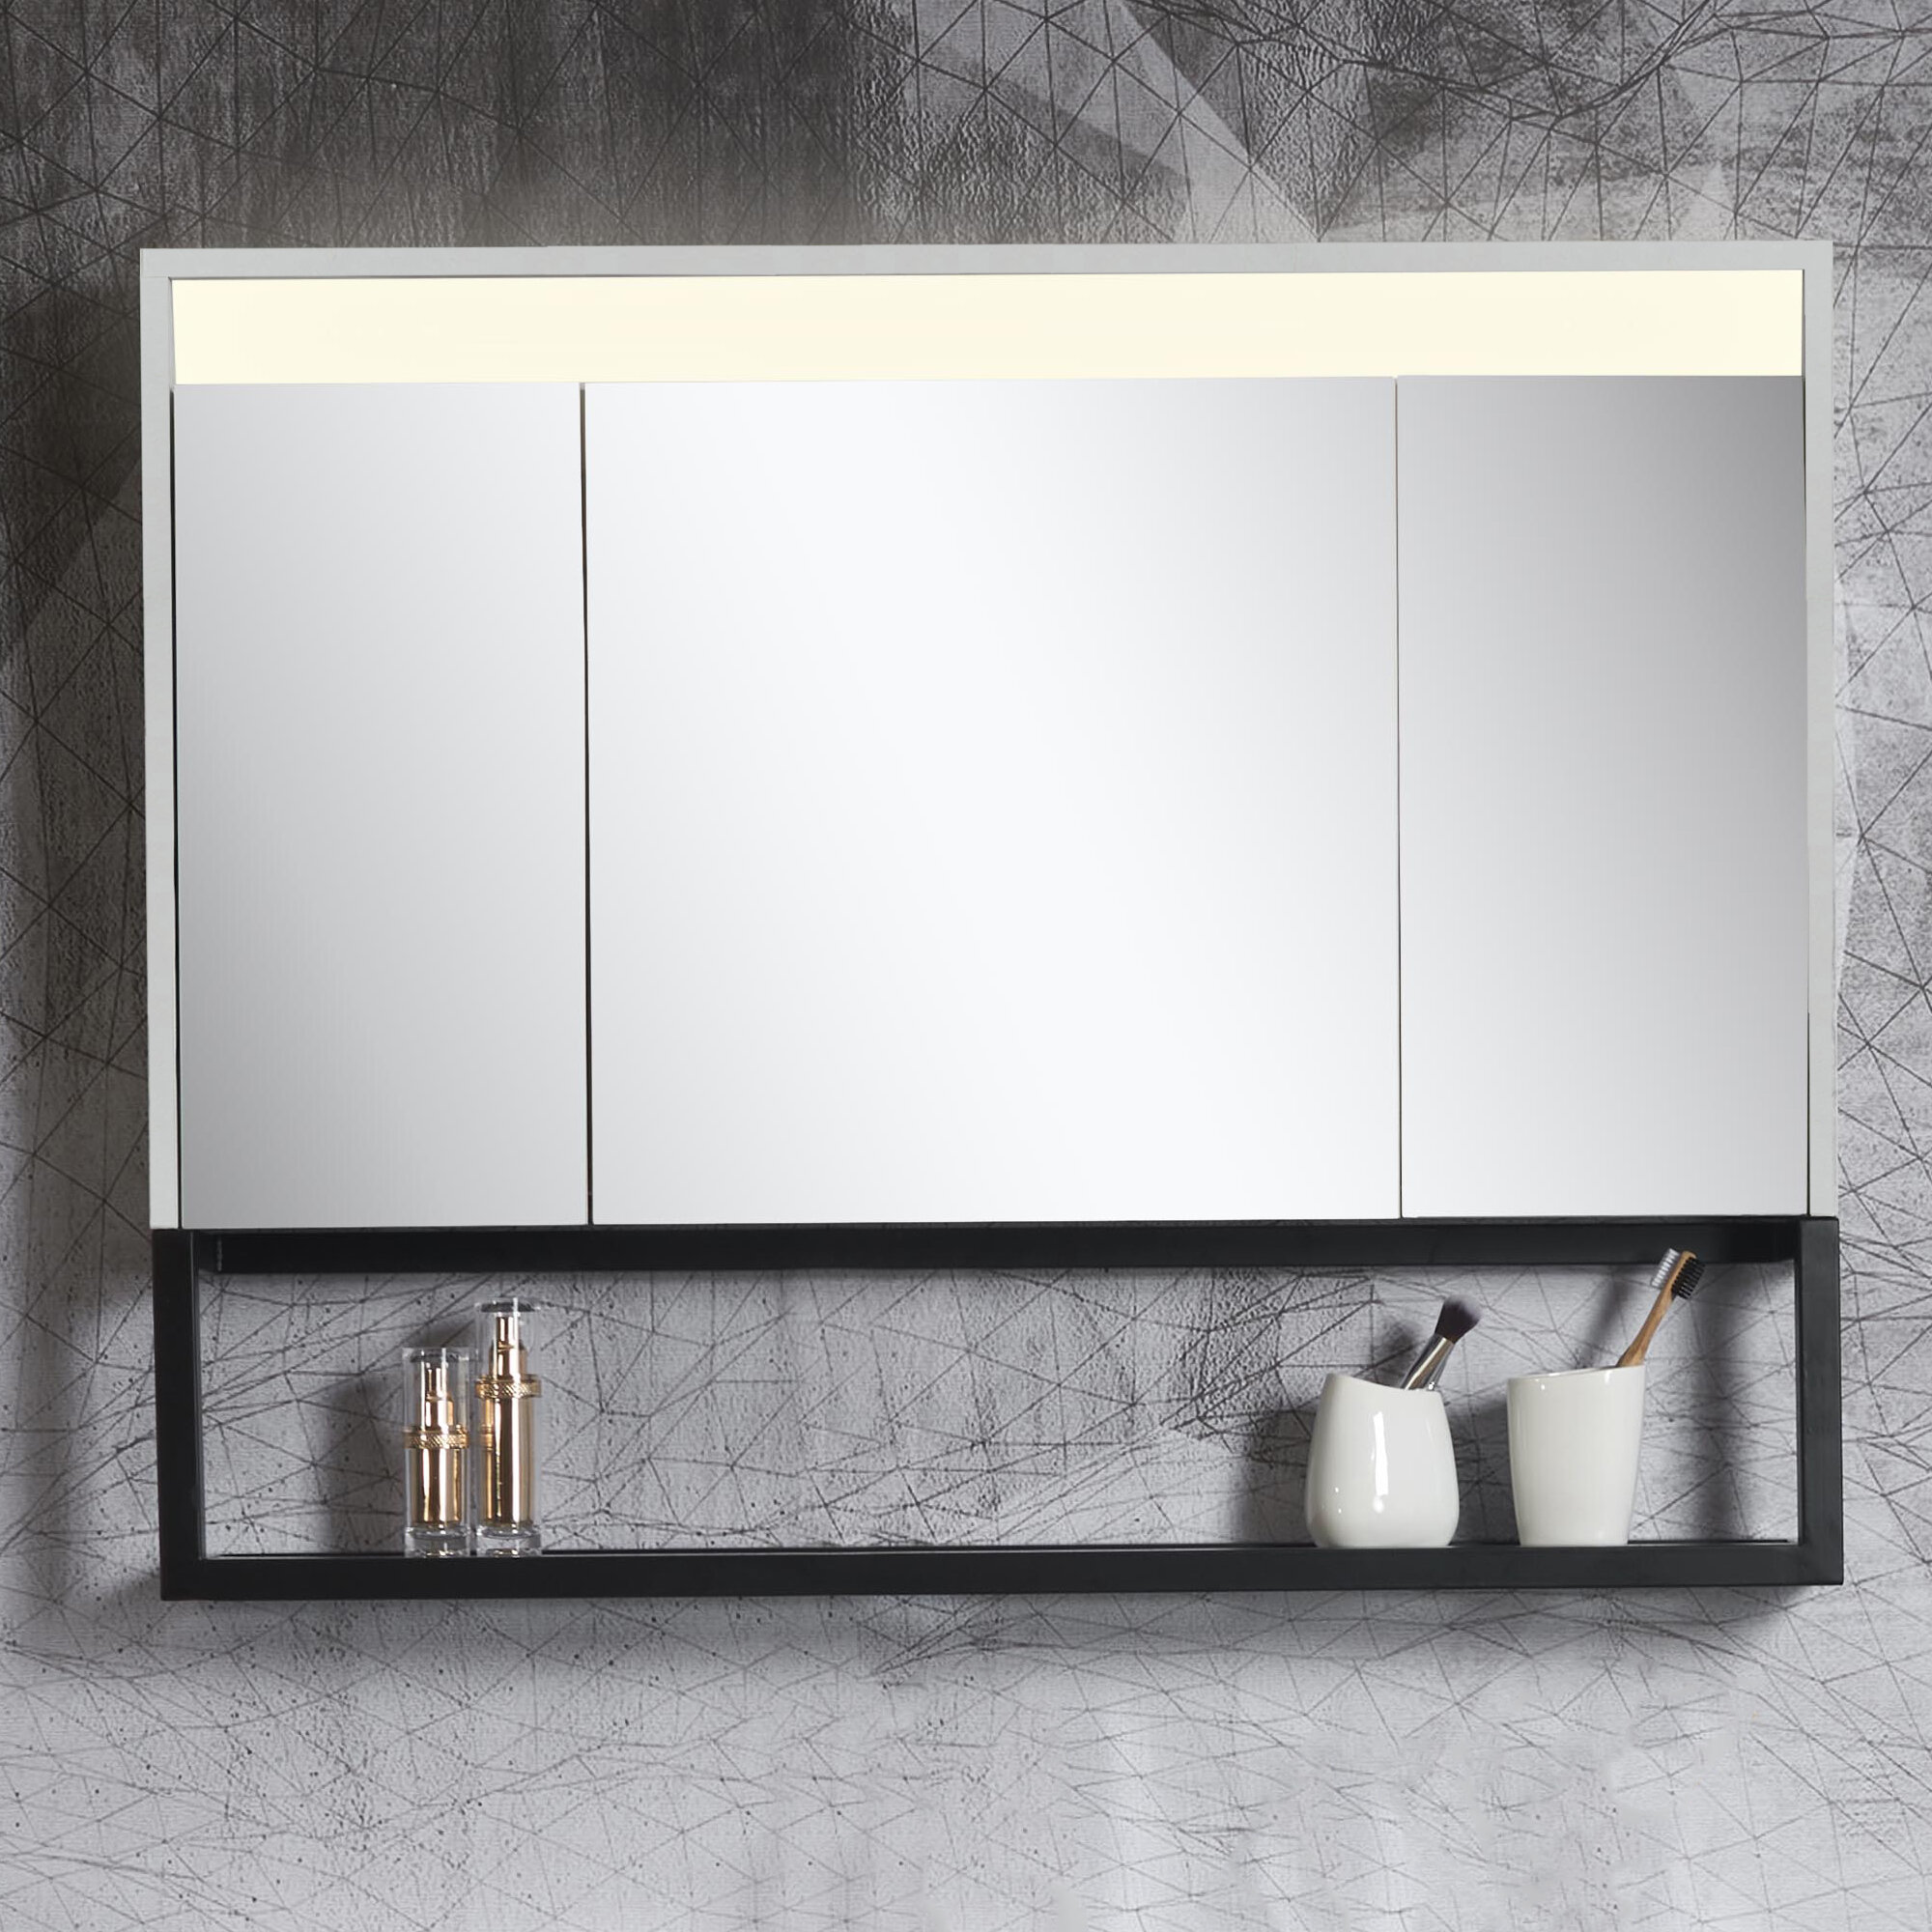 Fabulous Details About Forney 39 37 X 31 49 Surface Mount Medicine Cabinet With Led Lighting Download Free Architecture Designs Rallybritishbridgeorg